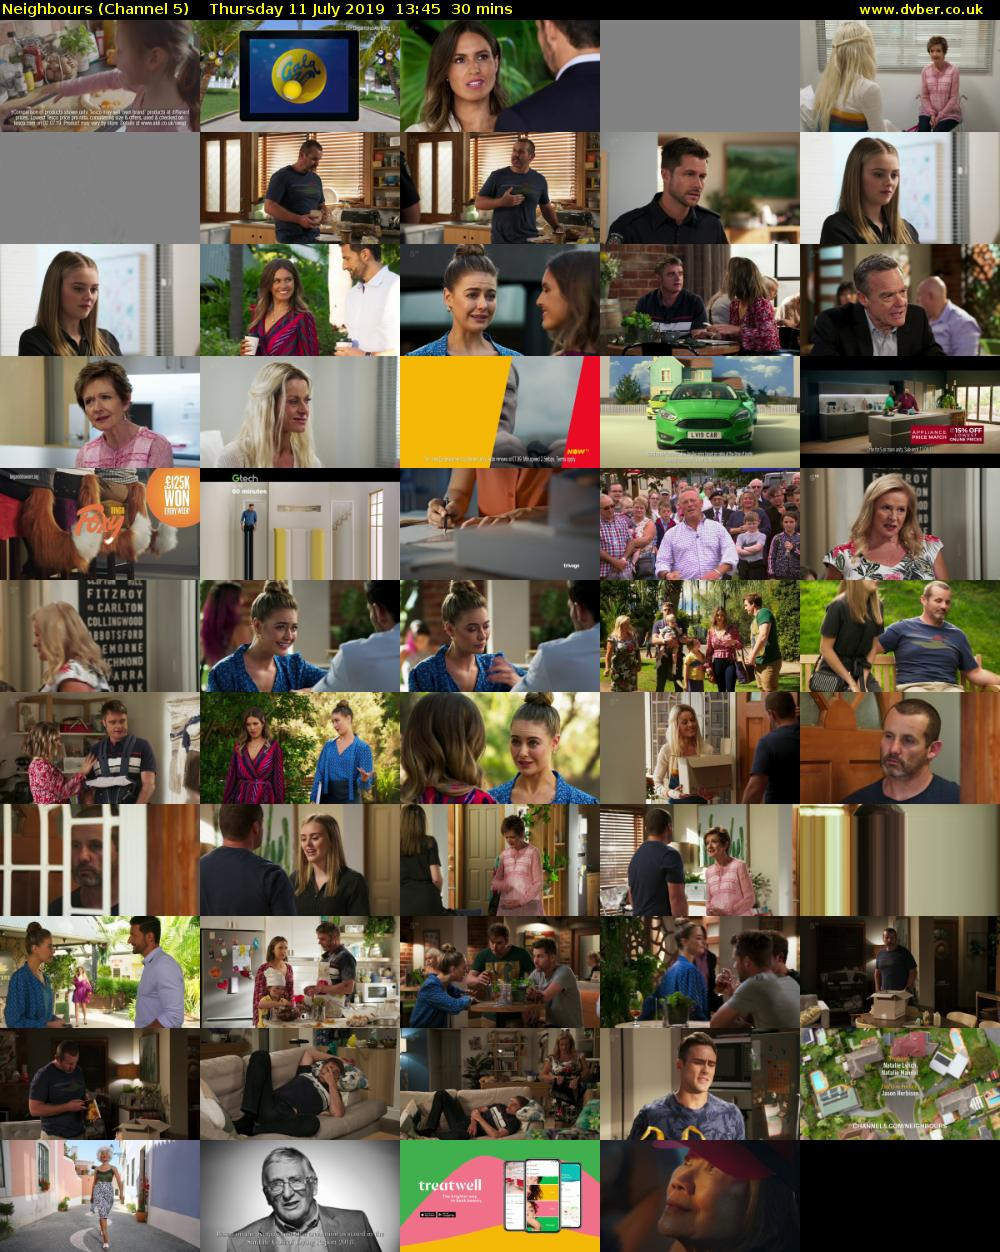 Neighbours (Channel 5) Thursday 11 July 2019 13:45 - 14:15